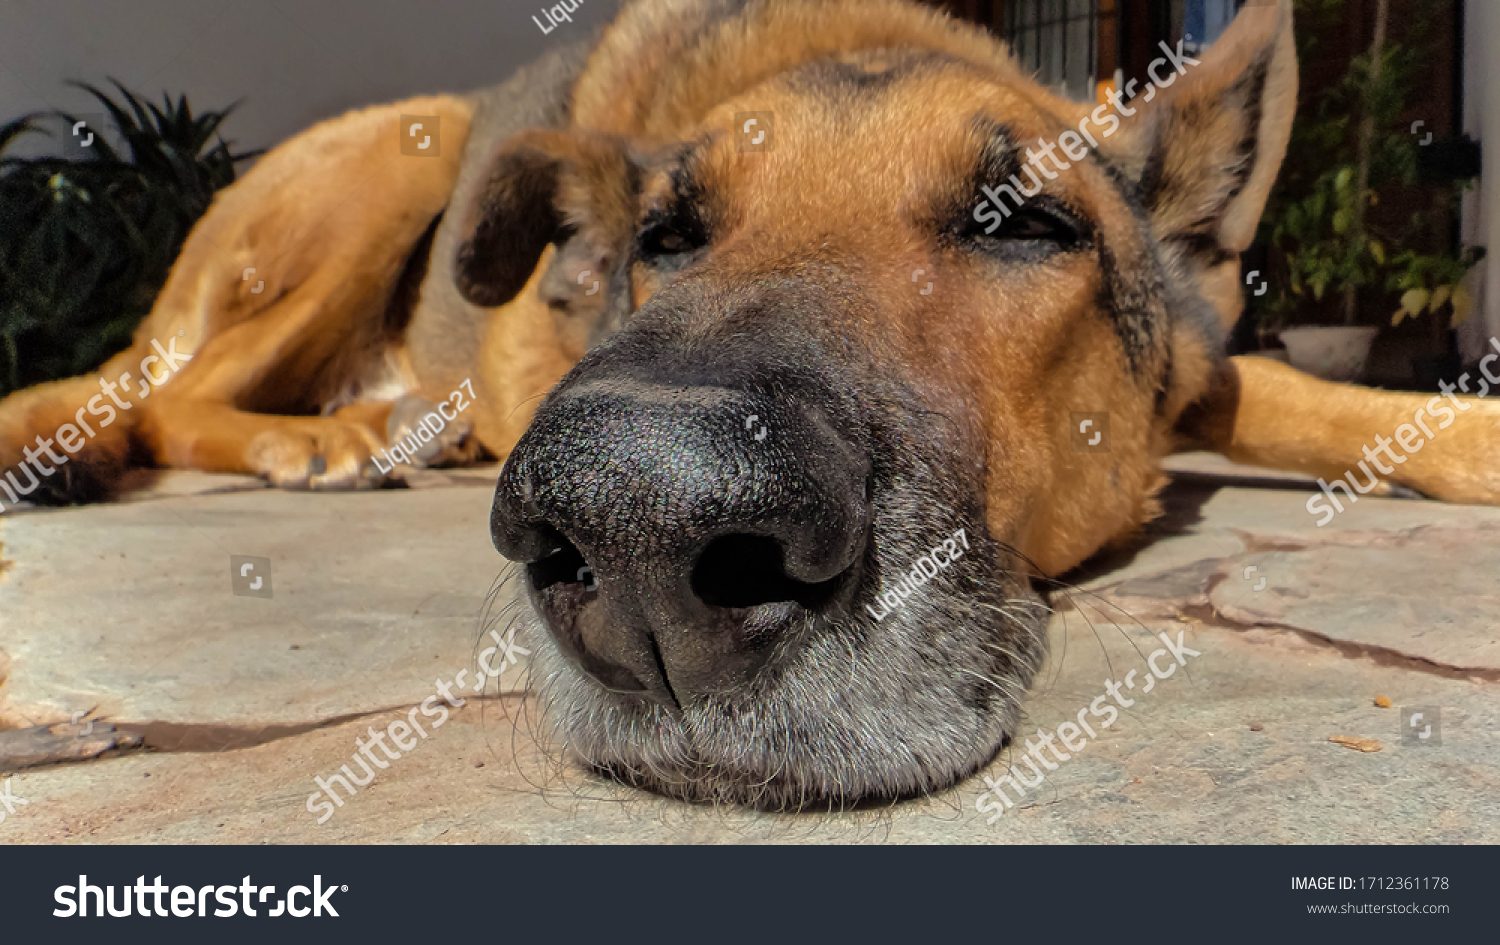 Close up of an Old doog sleeping on the floor, its snout is full of gray hair